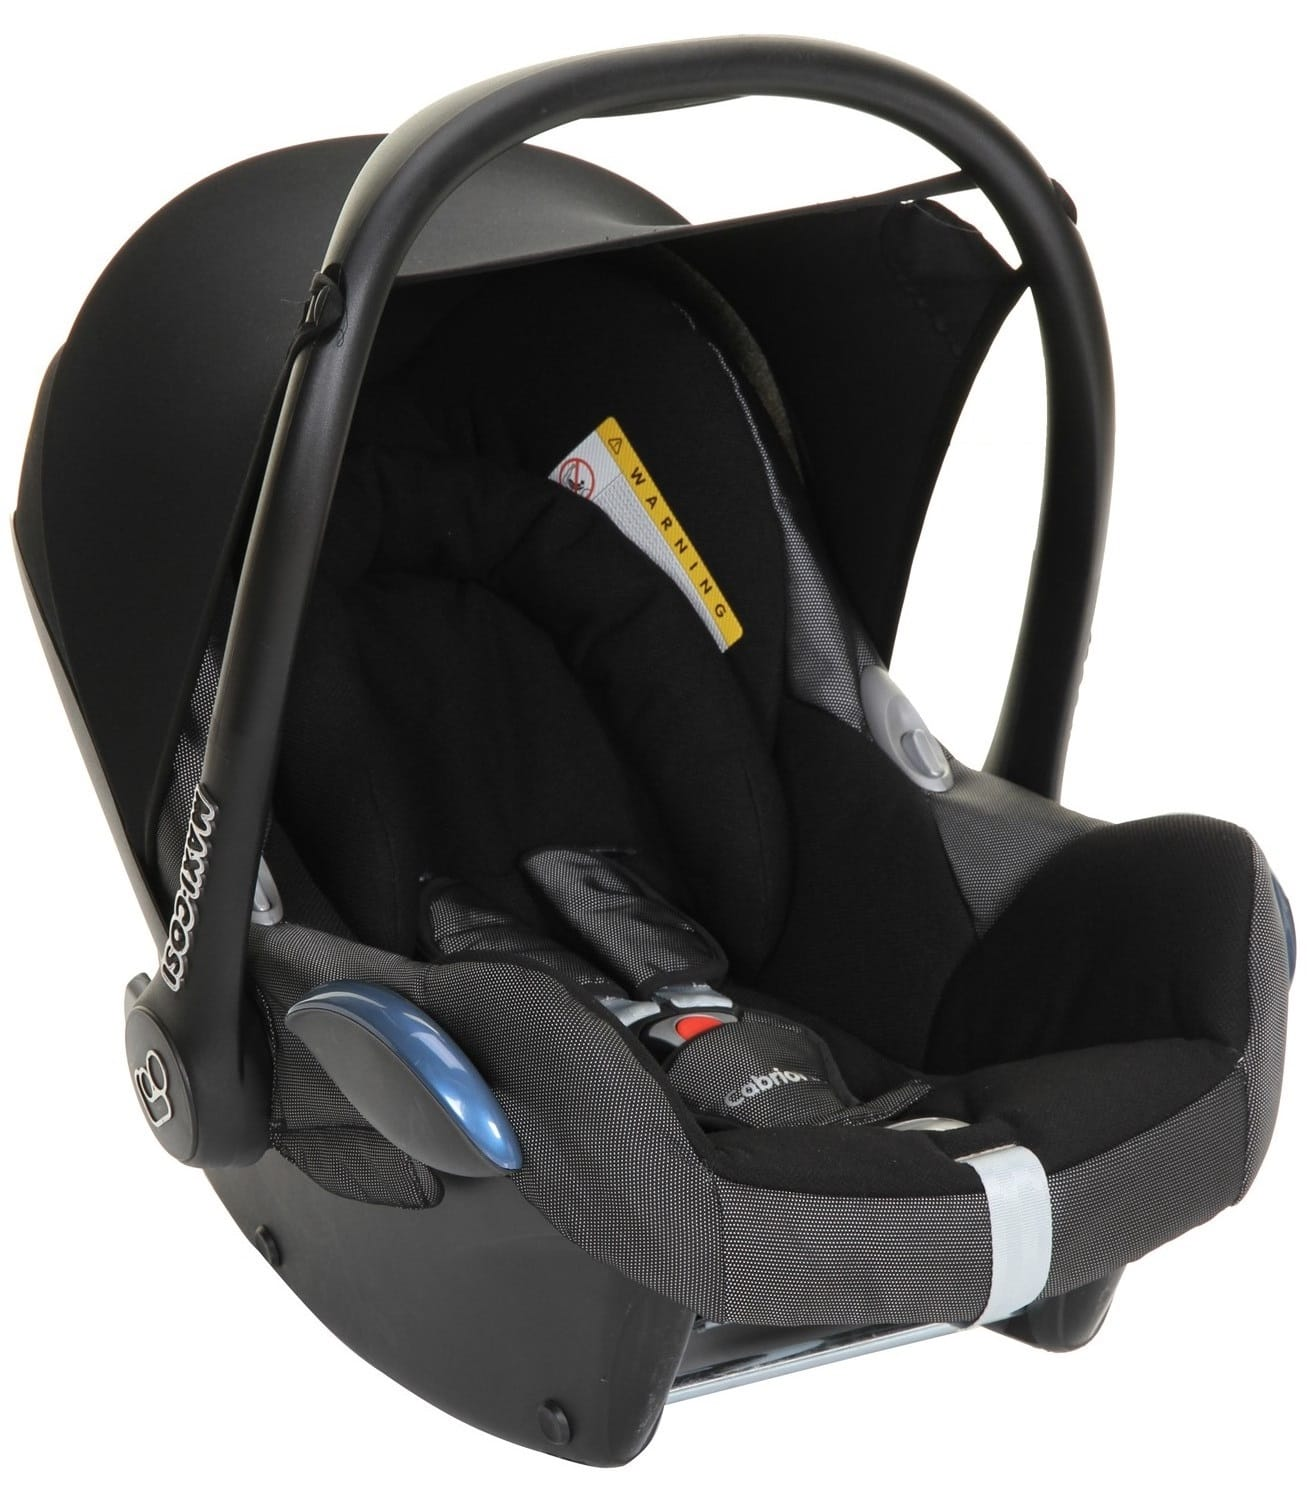 Maxi cosi pebble vs cabriofix buggybaby for Housse maxi cosi cabriofix